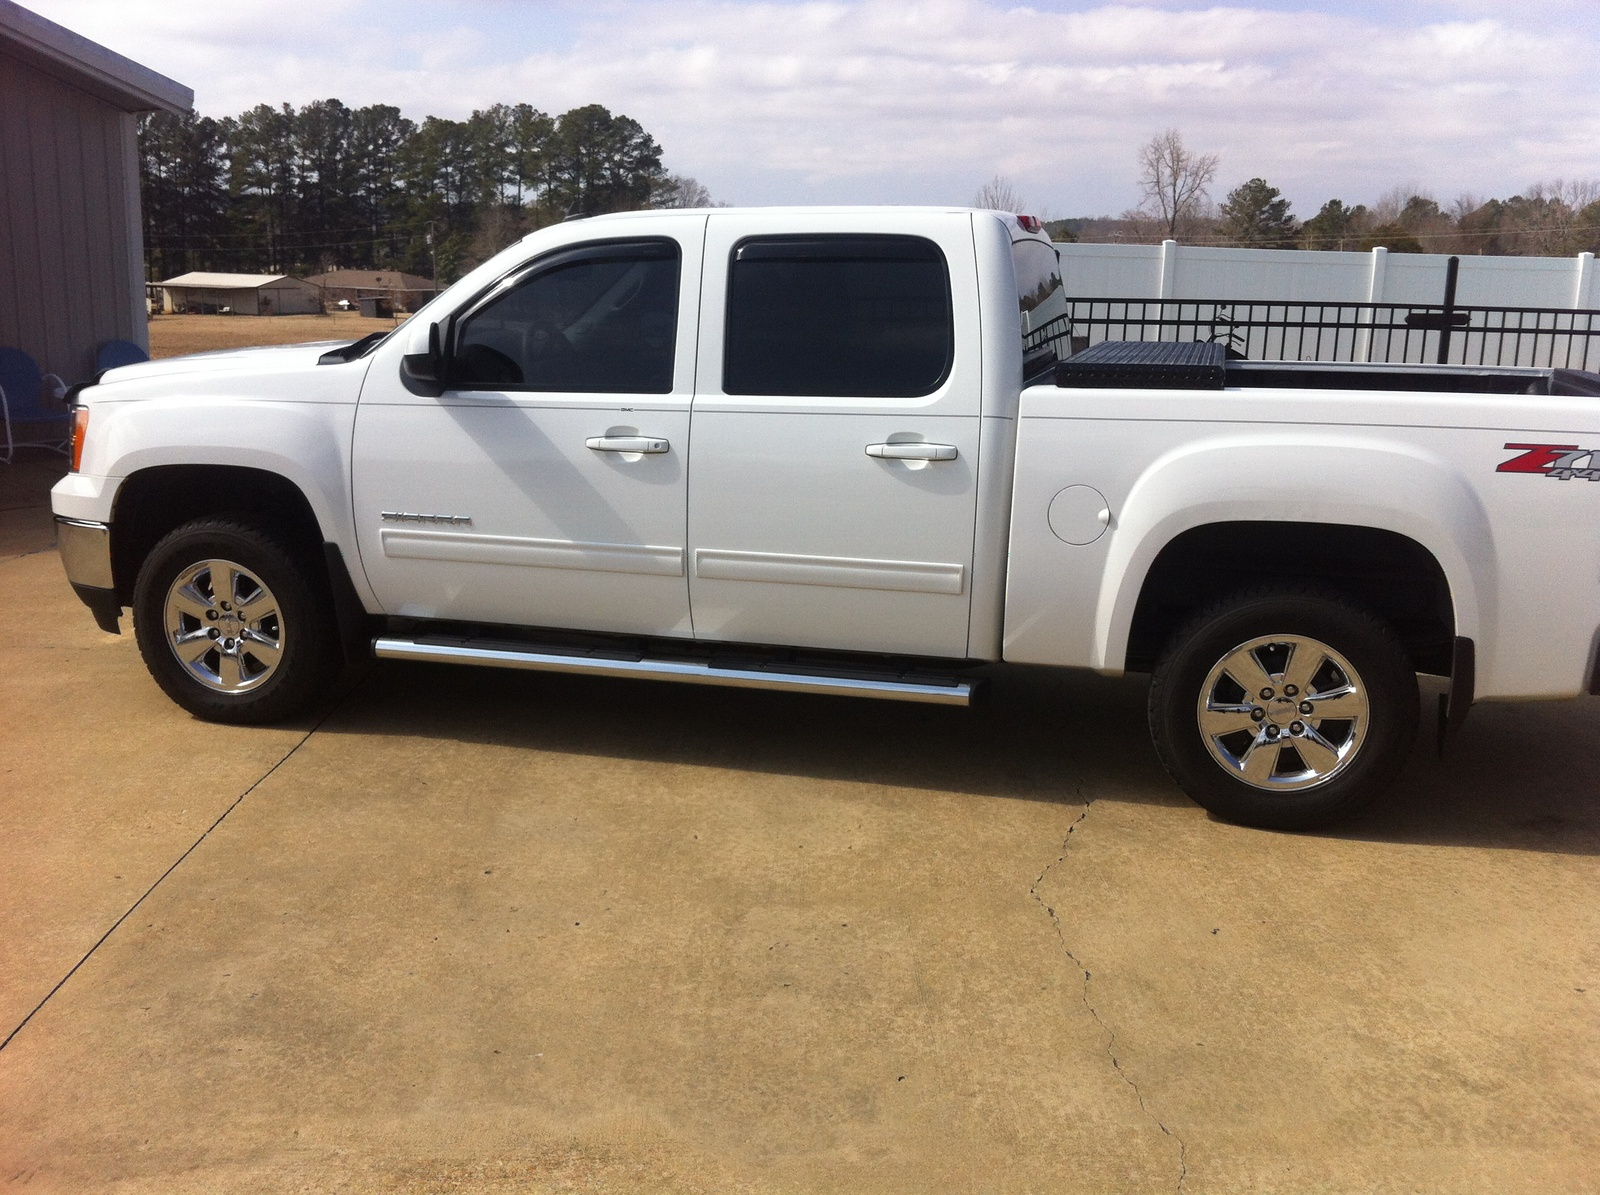 2010 gmc sierra 1500 crew cab 4wd new car pictures prices and html autos weblog. Black Bedroom Furniture Sets. Home Design Ideas